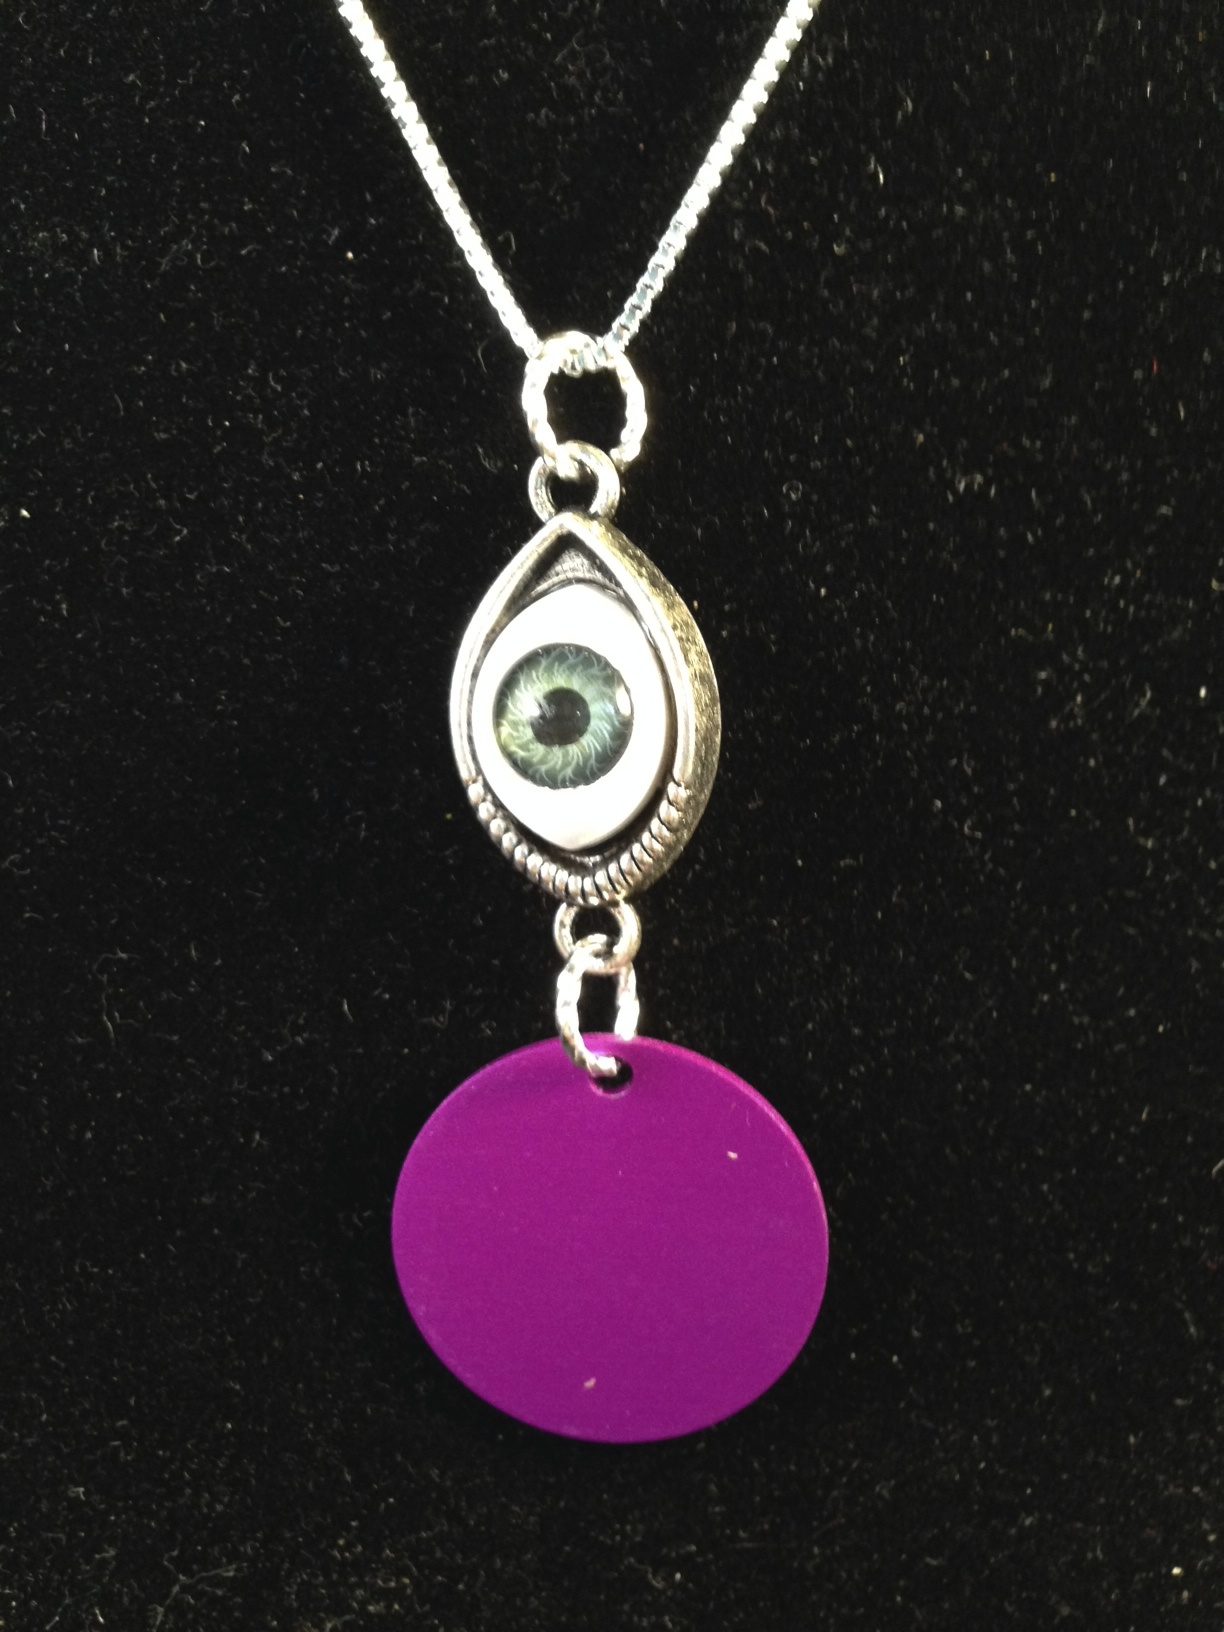 Mystical Eye with Purple Disk